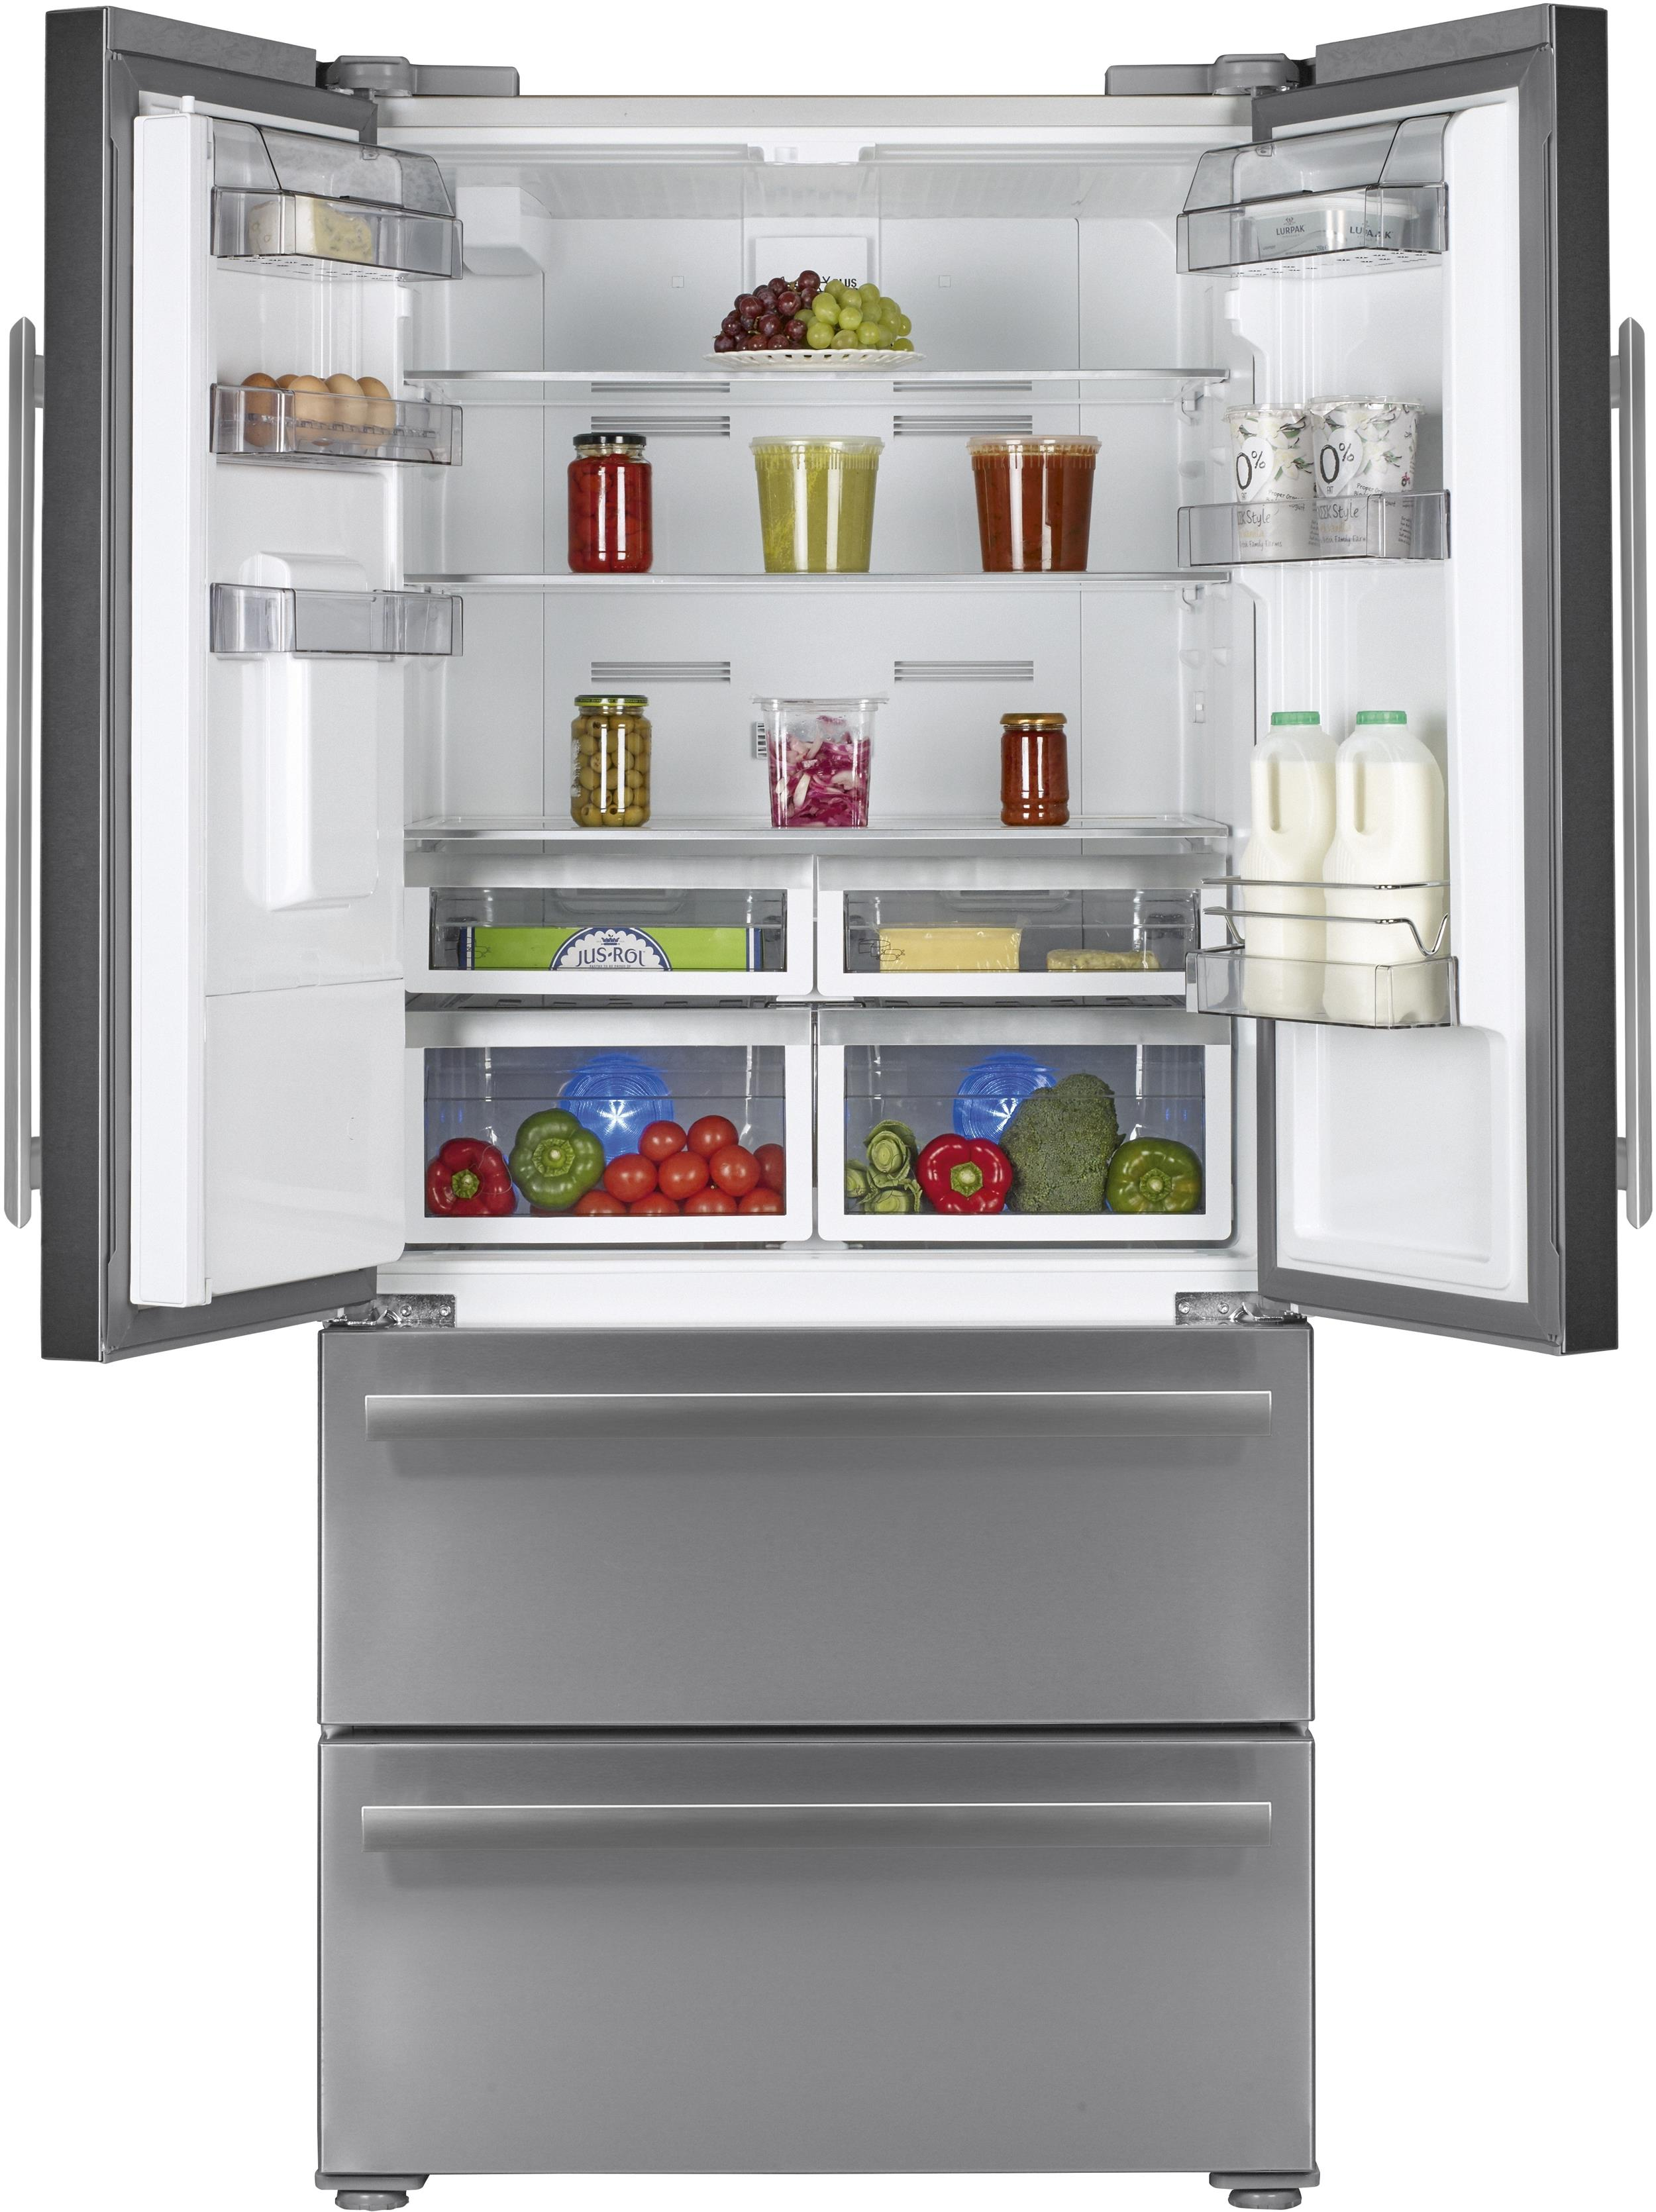 Kfd4952xd Innovative Two Door Two Drawer Fridge Freezer